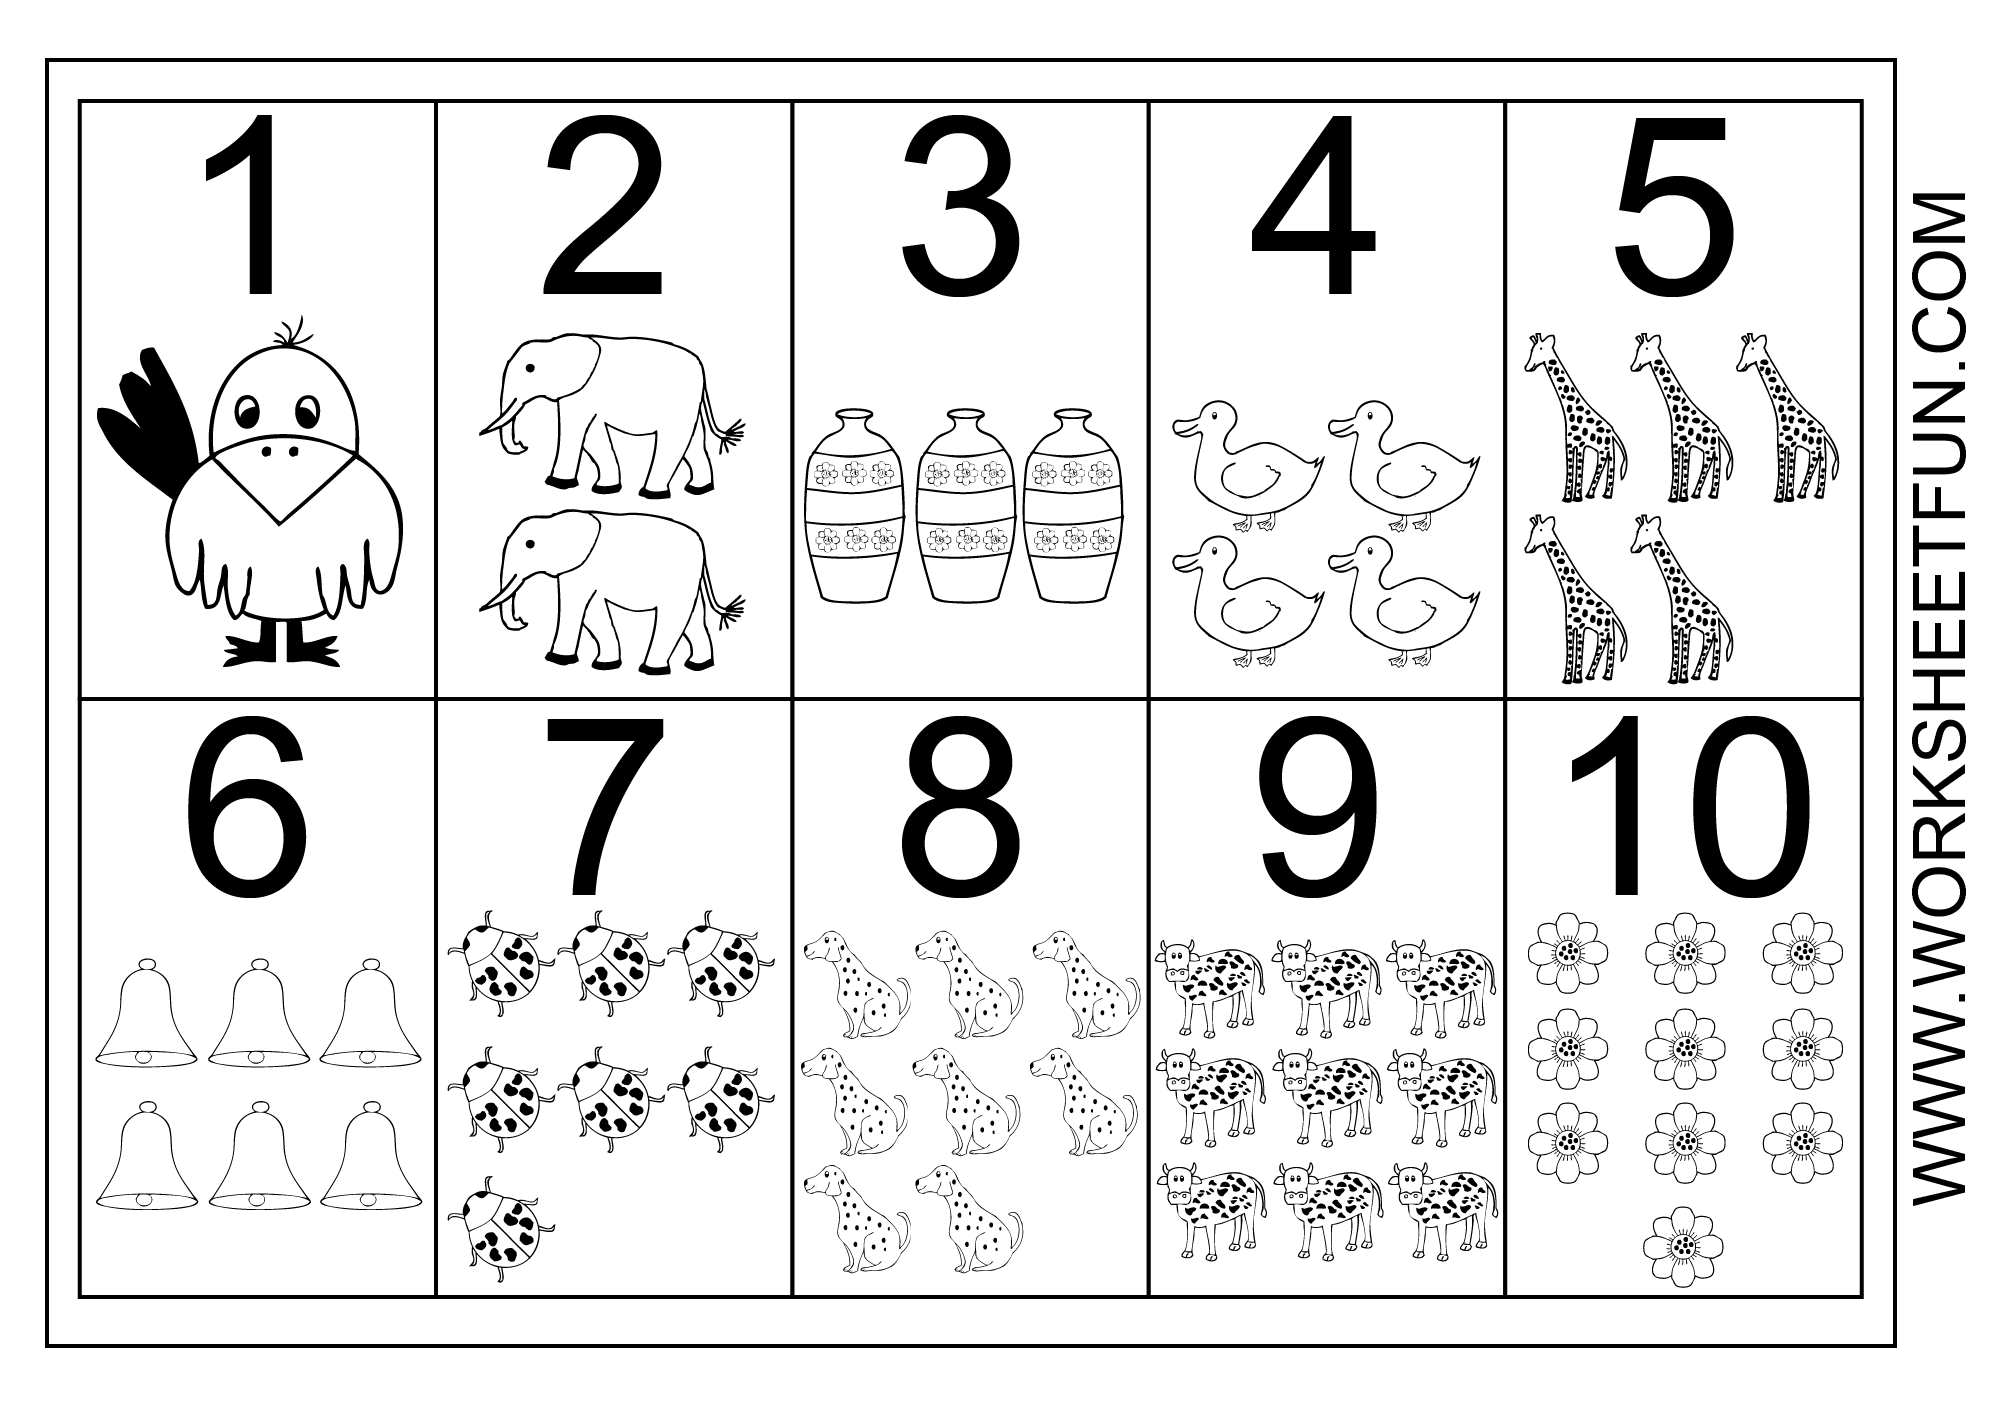 worksheet Numbers Worksheets For Preschool 1000 images about toddler worksheets on pinterest alphabet preschool and preschool